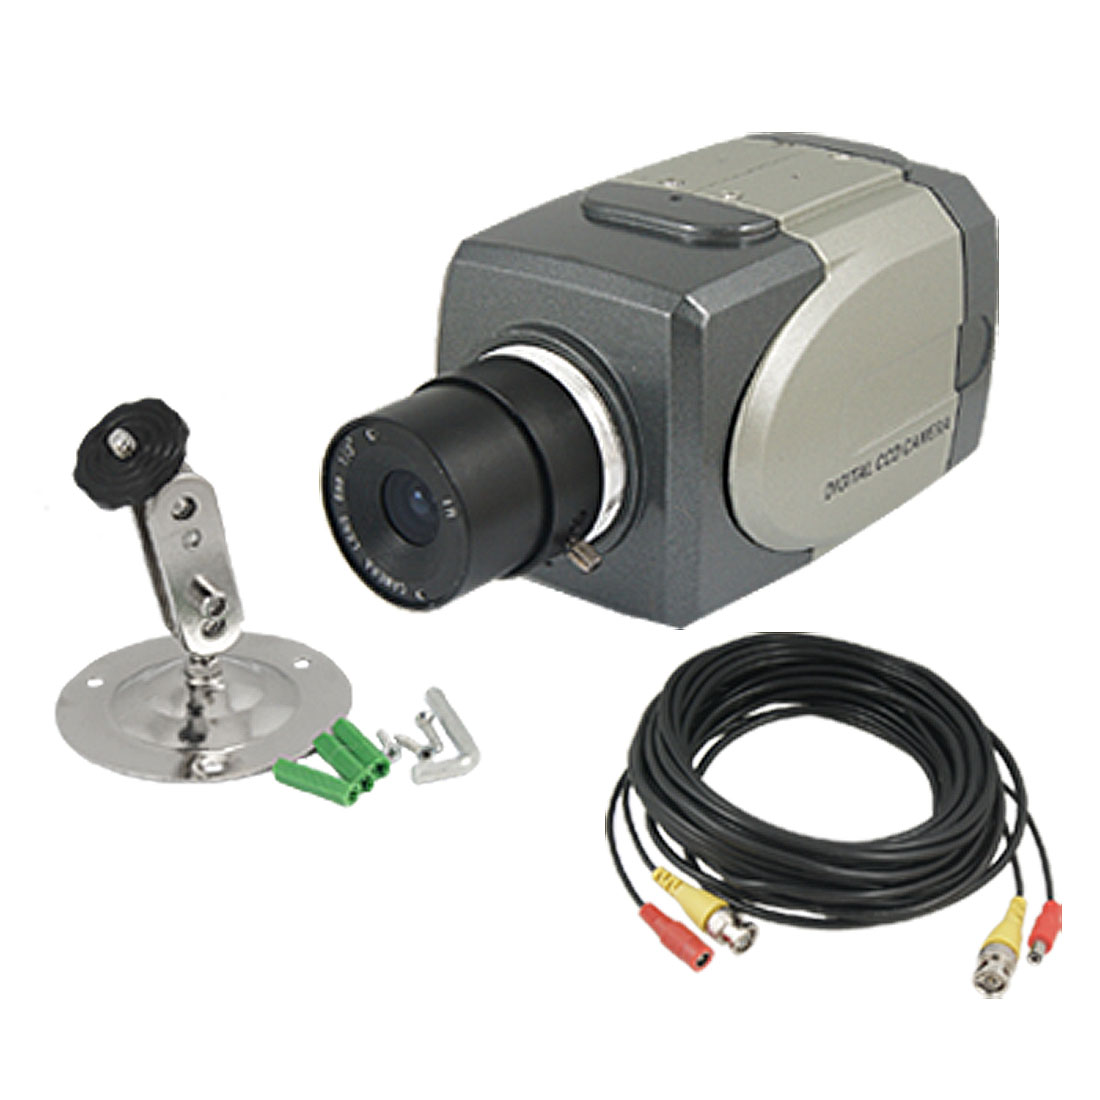 "6mm Lens 1/4"" CCD Security CCTV IR Digital Camera w 10m BNC DC Cable"